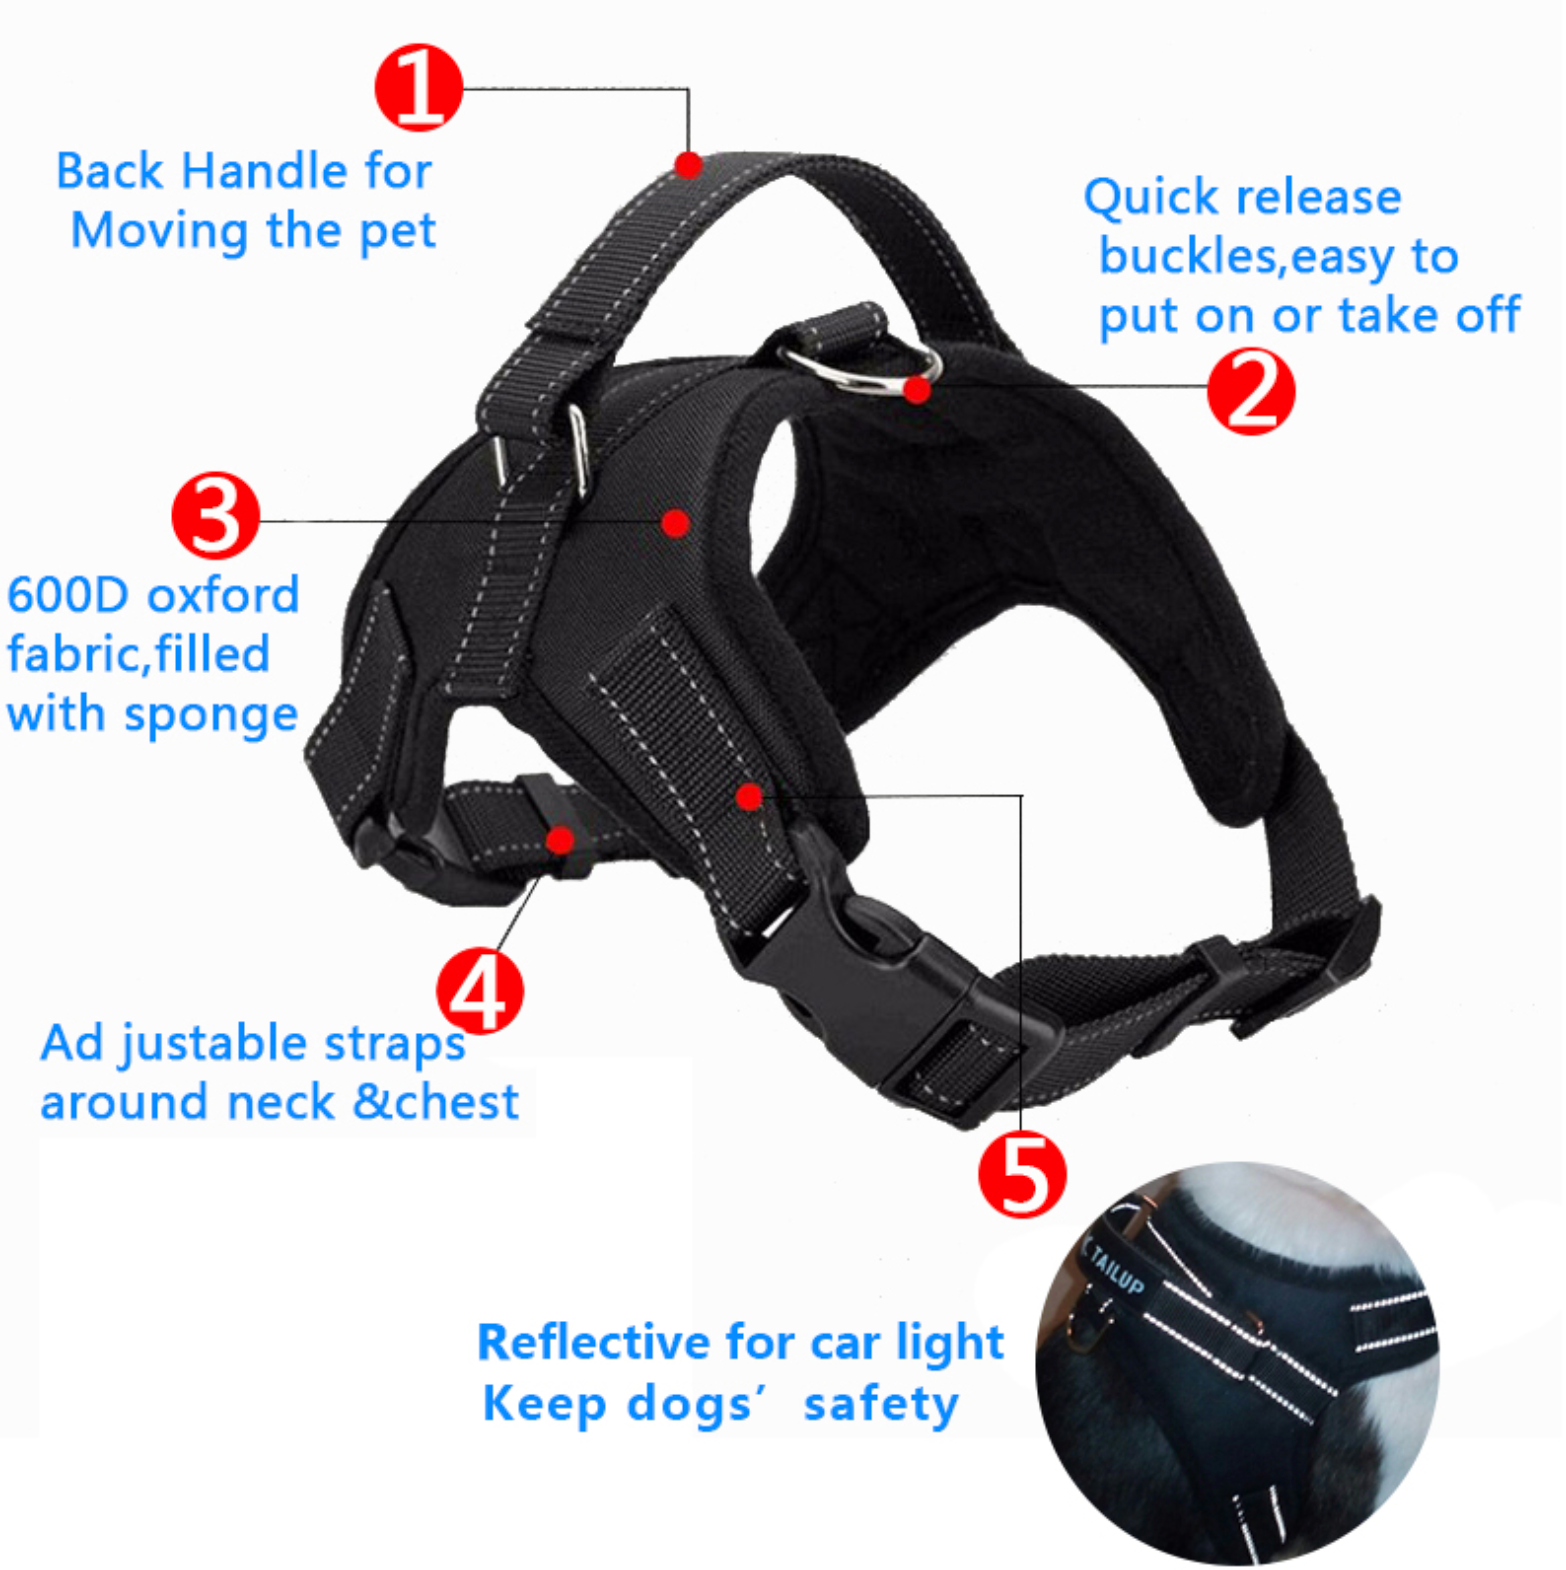 Easy Walk Adjustable Dog Harness With Guide Handle And Leash Ring